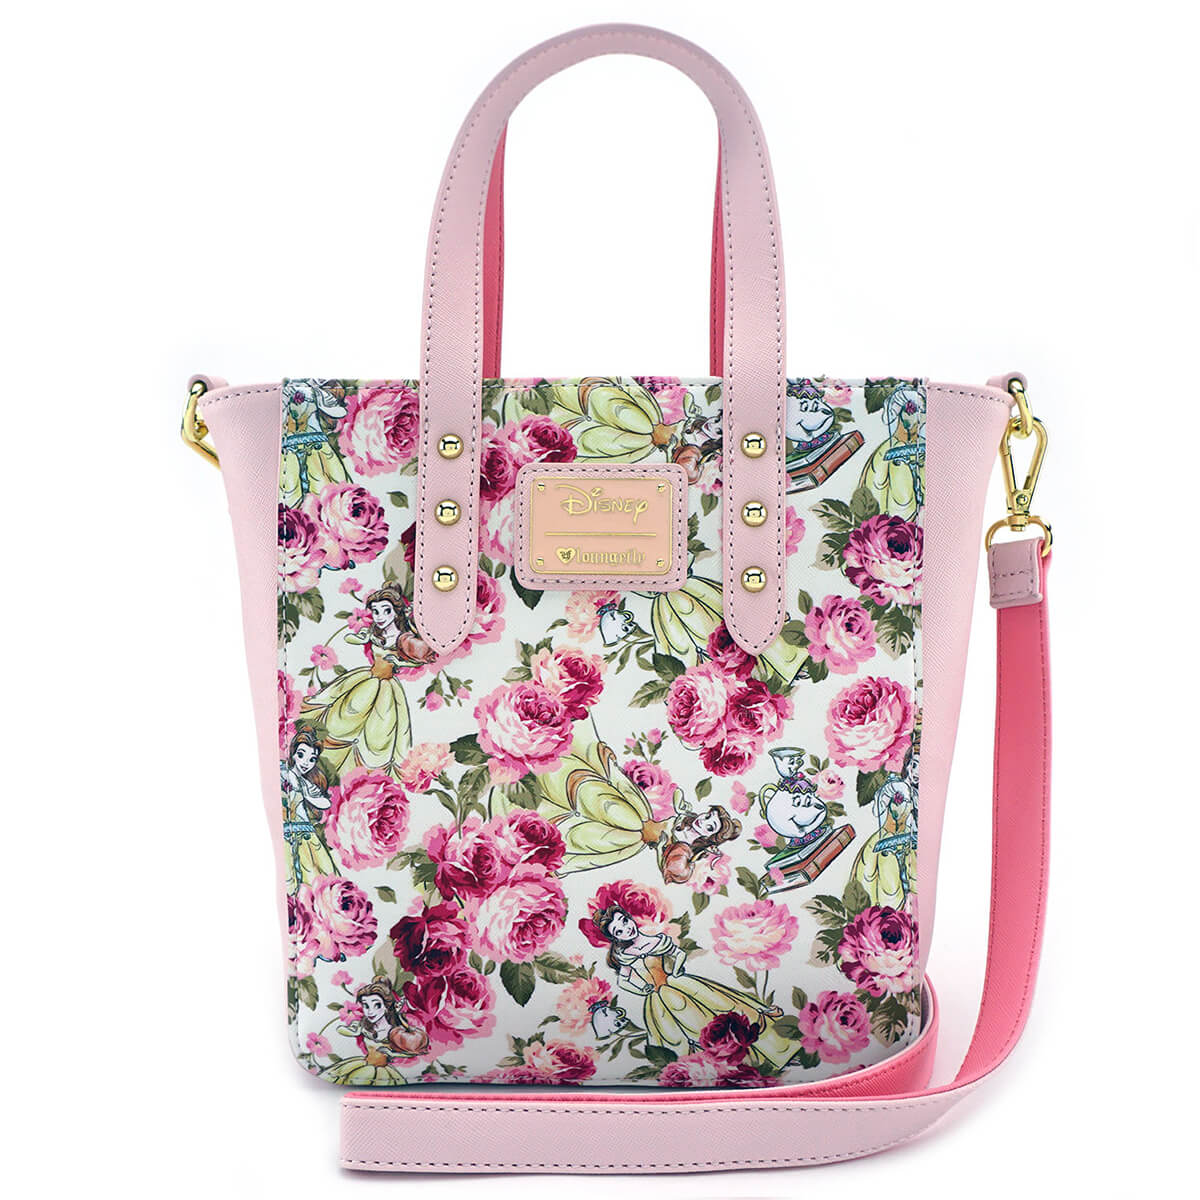 f3949cee794 Loungefly Disney Beauty and the Beast Character Floral AOP Tote Bag.  Description